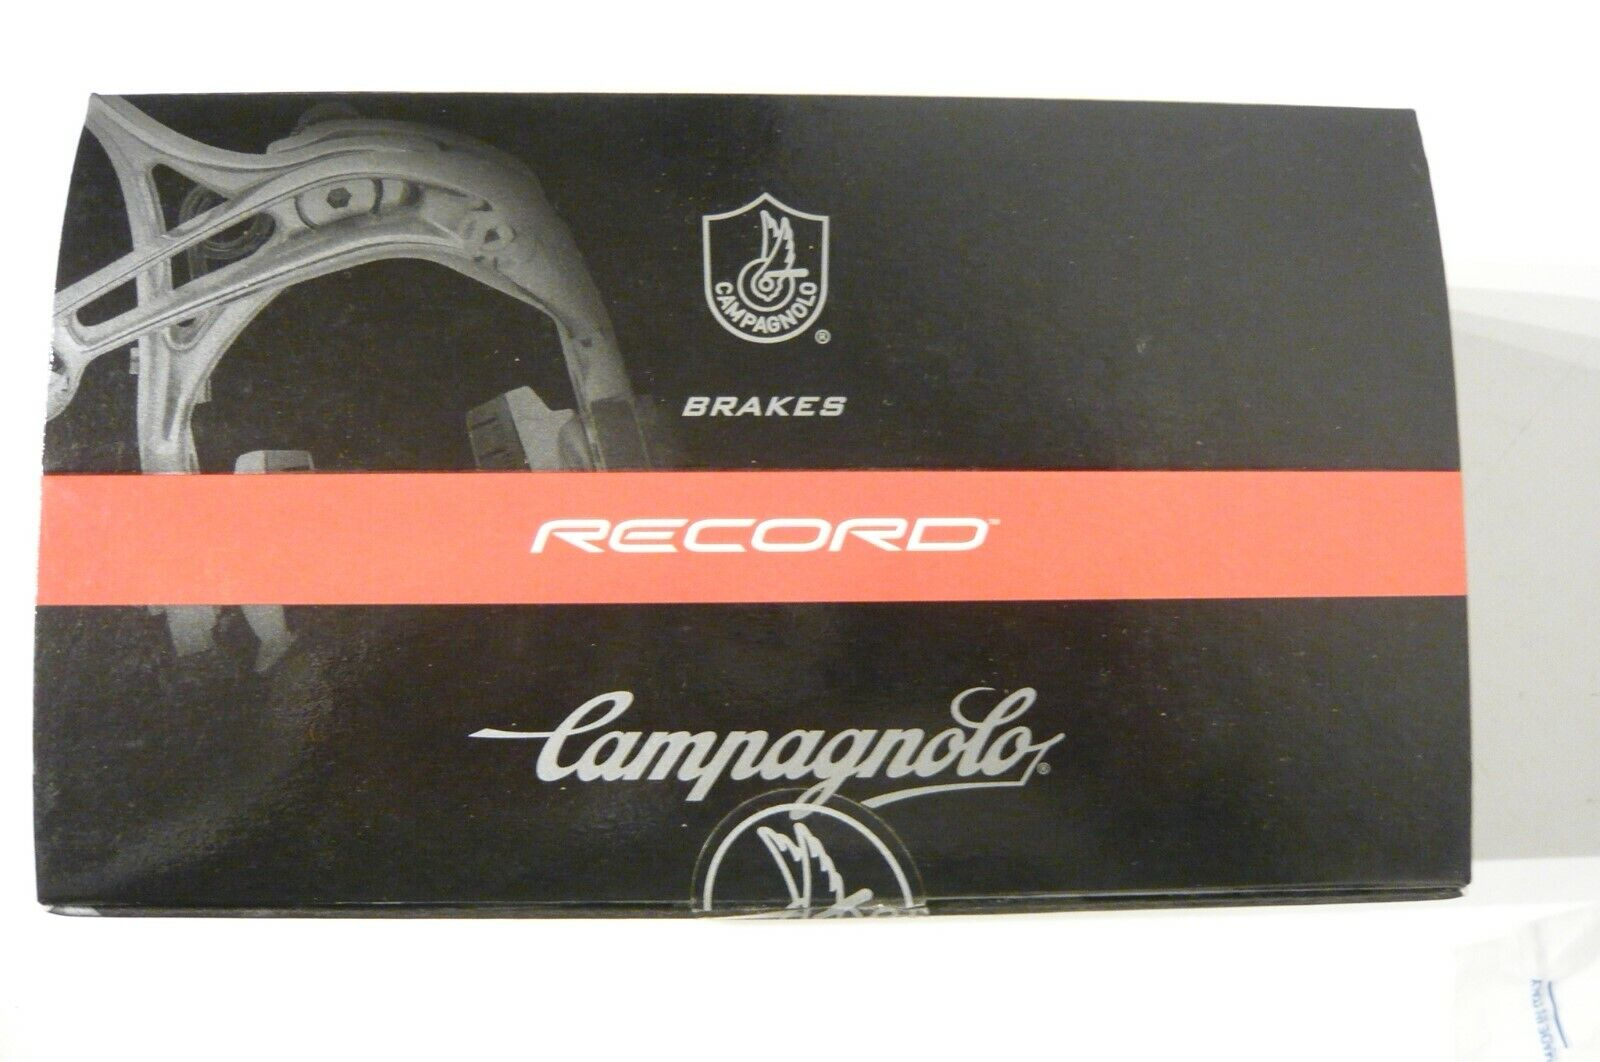 Campagnolo BR9-RE  Record  2009 Skeleton differential   brake caliper set  no.1 online